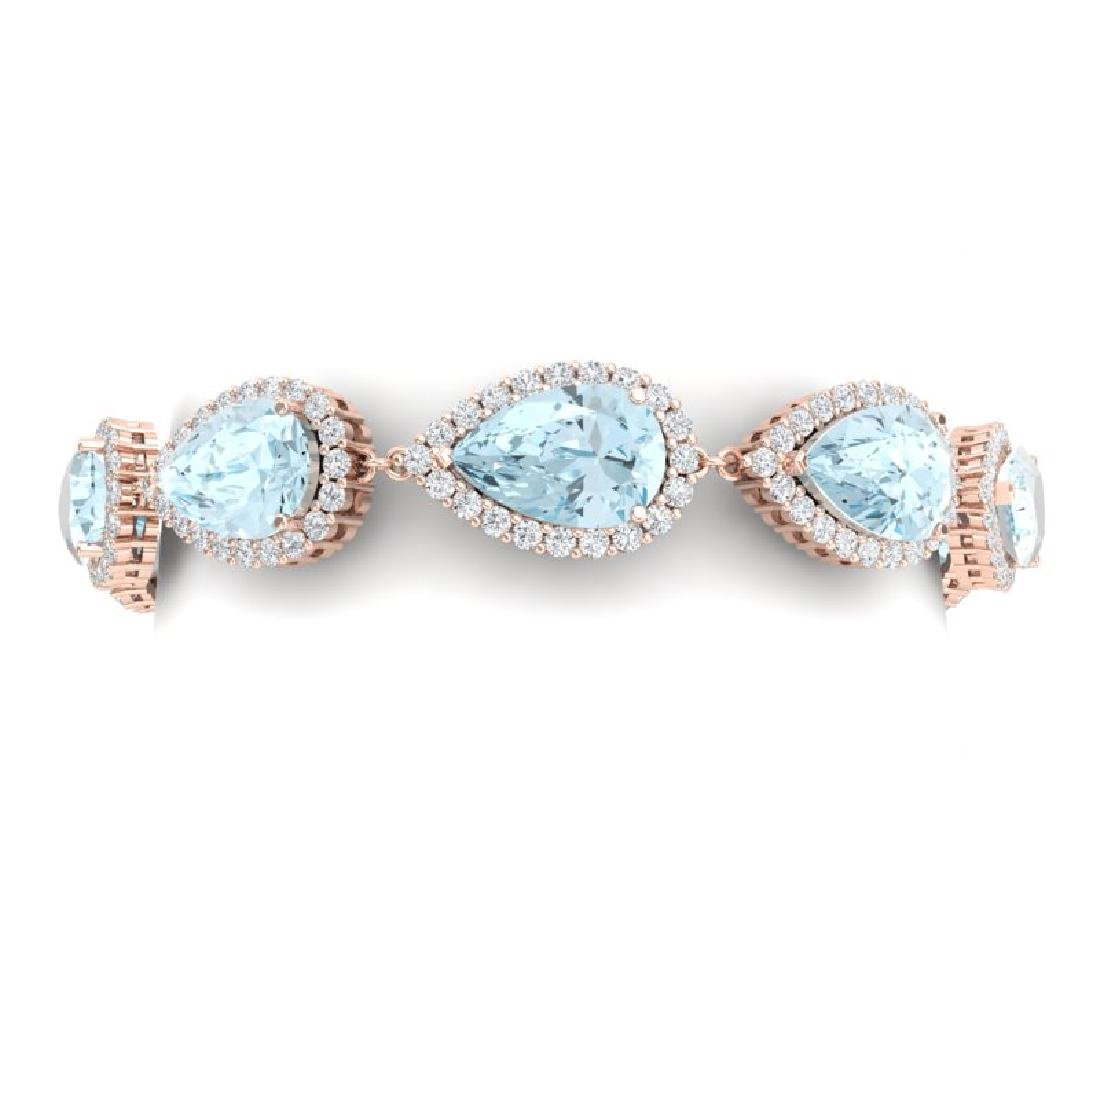 41.87 CTW Royalty Sky Topaz & VS Diamond Bracelet 18K